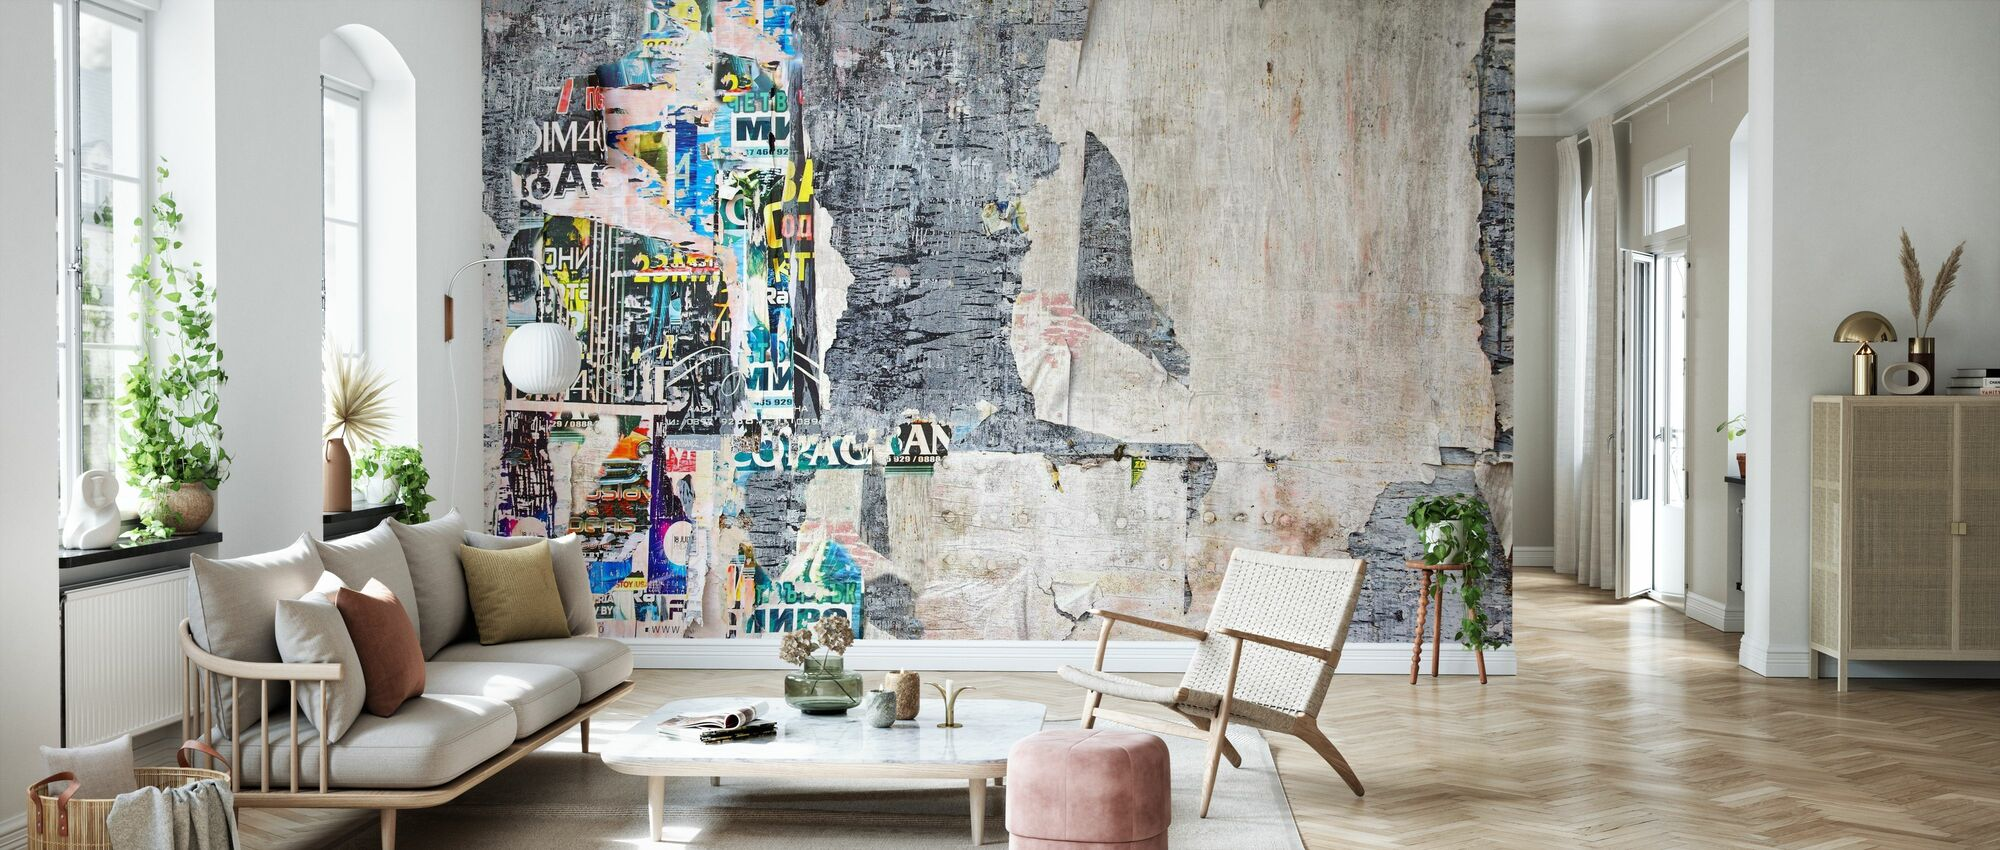 Wood Billboard with Torn Posters - Wallpaper - Living Room